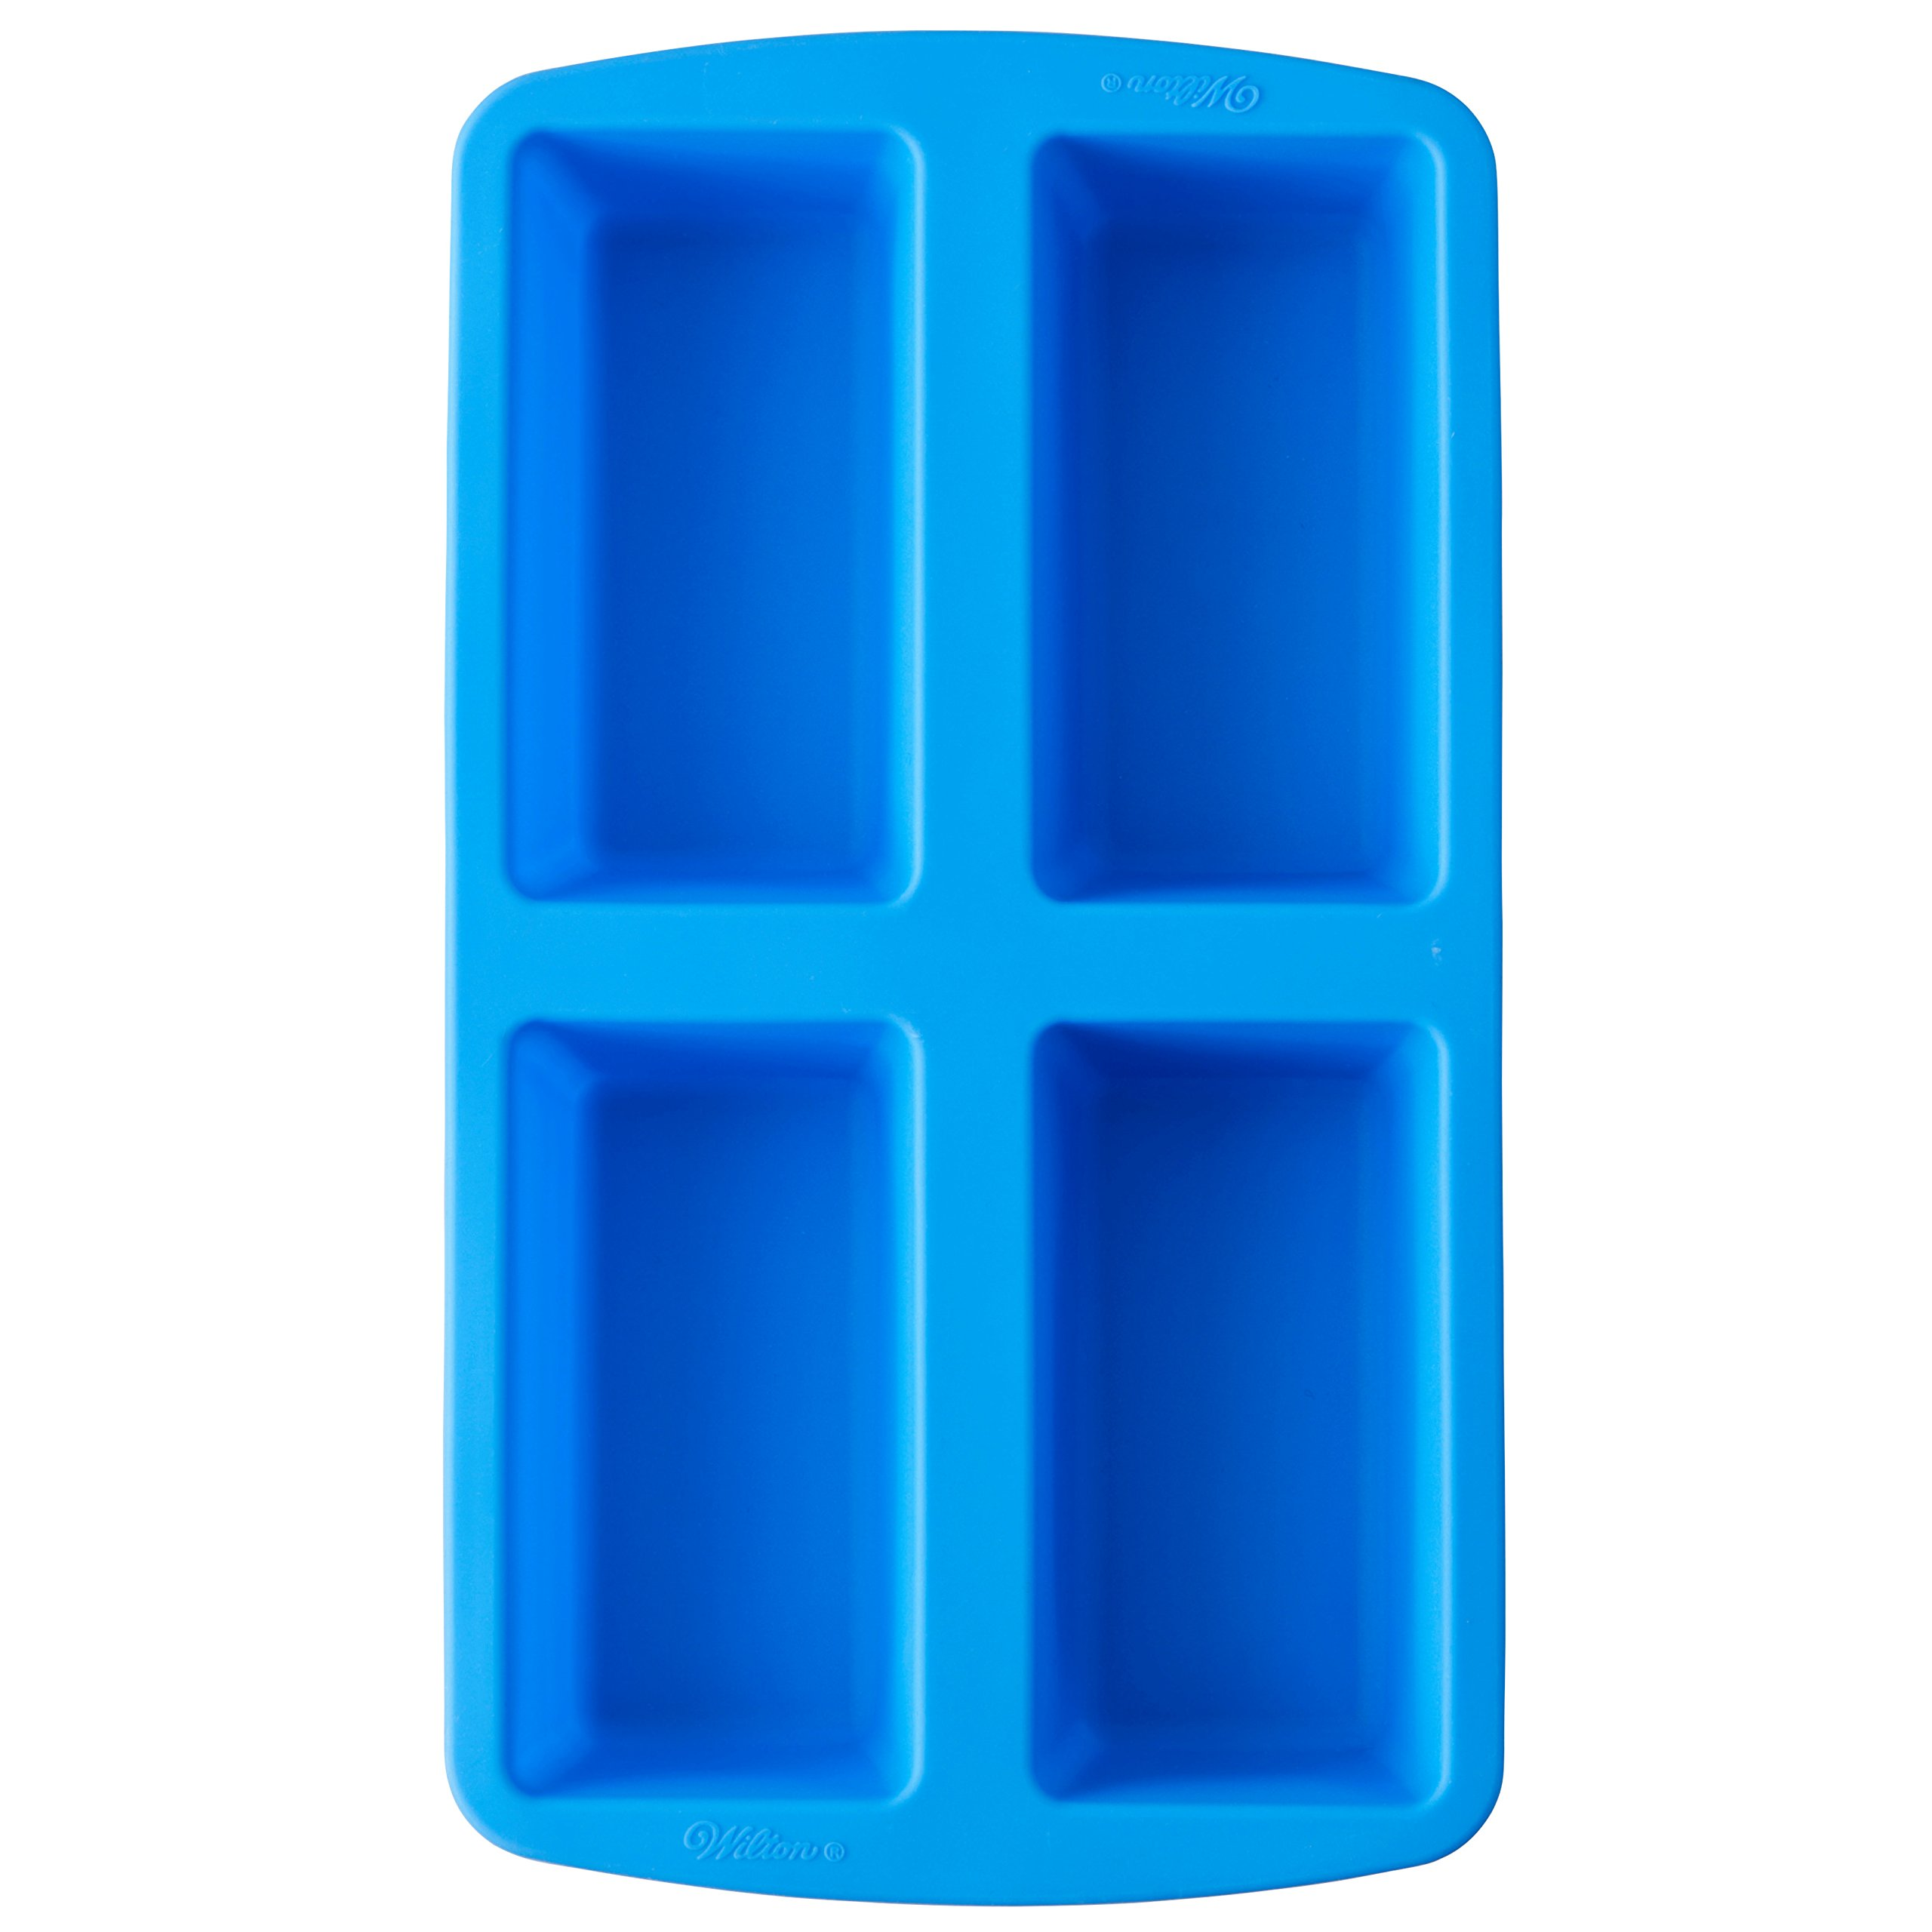 Wilton Easy-Flex Silicone Mini Loaf Pan for Bread, Cakes and Meatloaf, 4-Cavity by Wilton